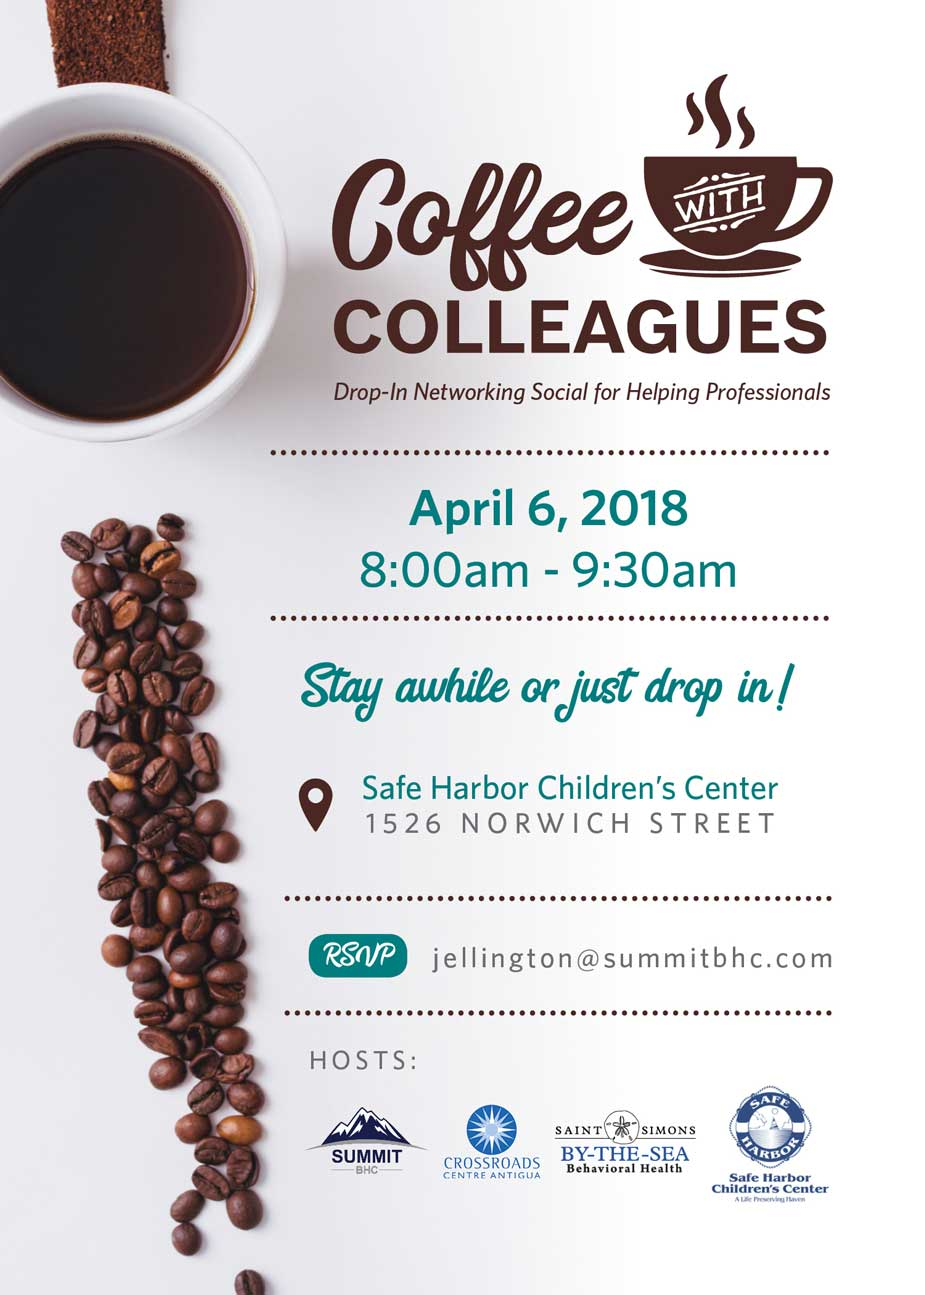 Coffee with Colleagues - April 6, 2018 - Summit BHC hosted events